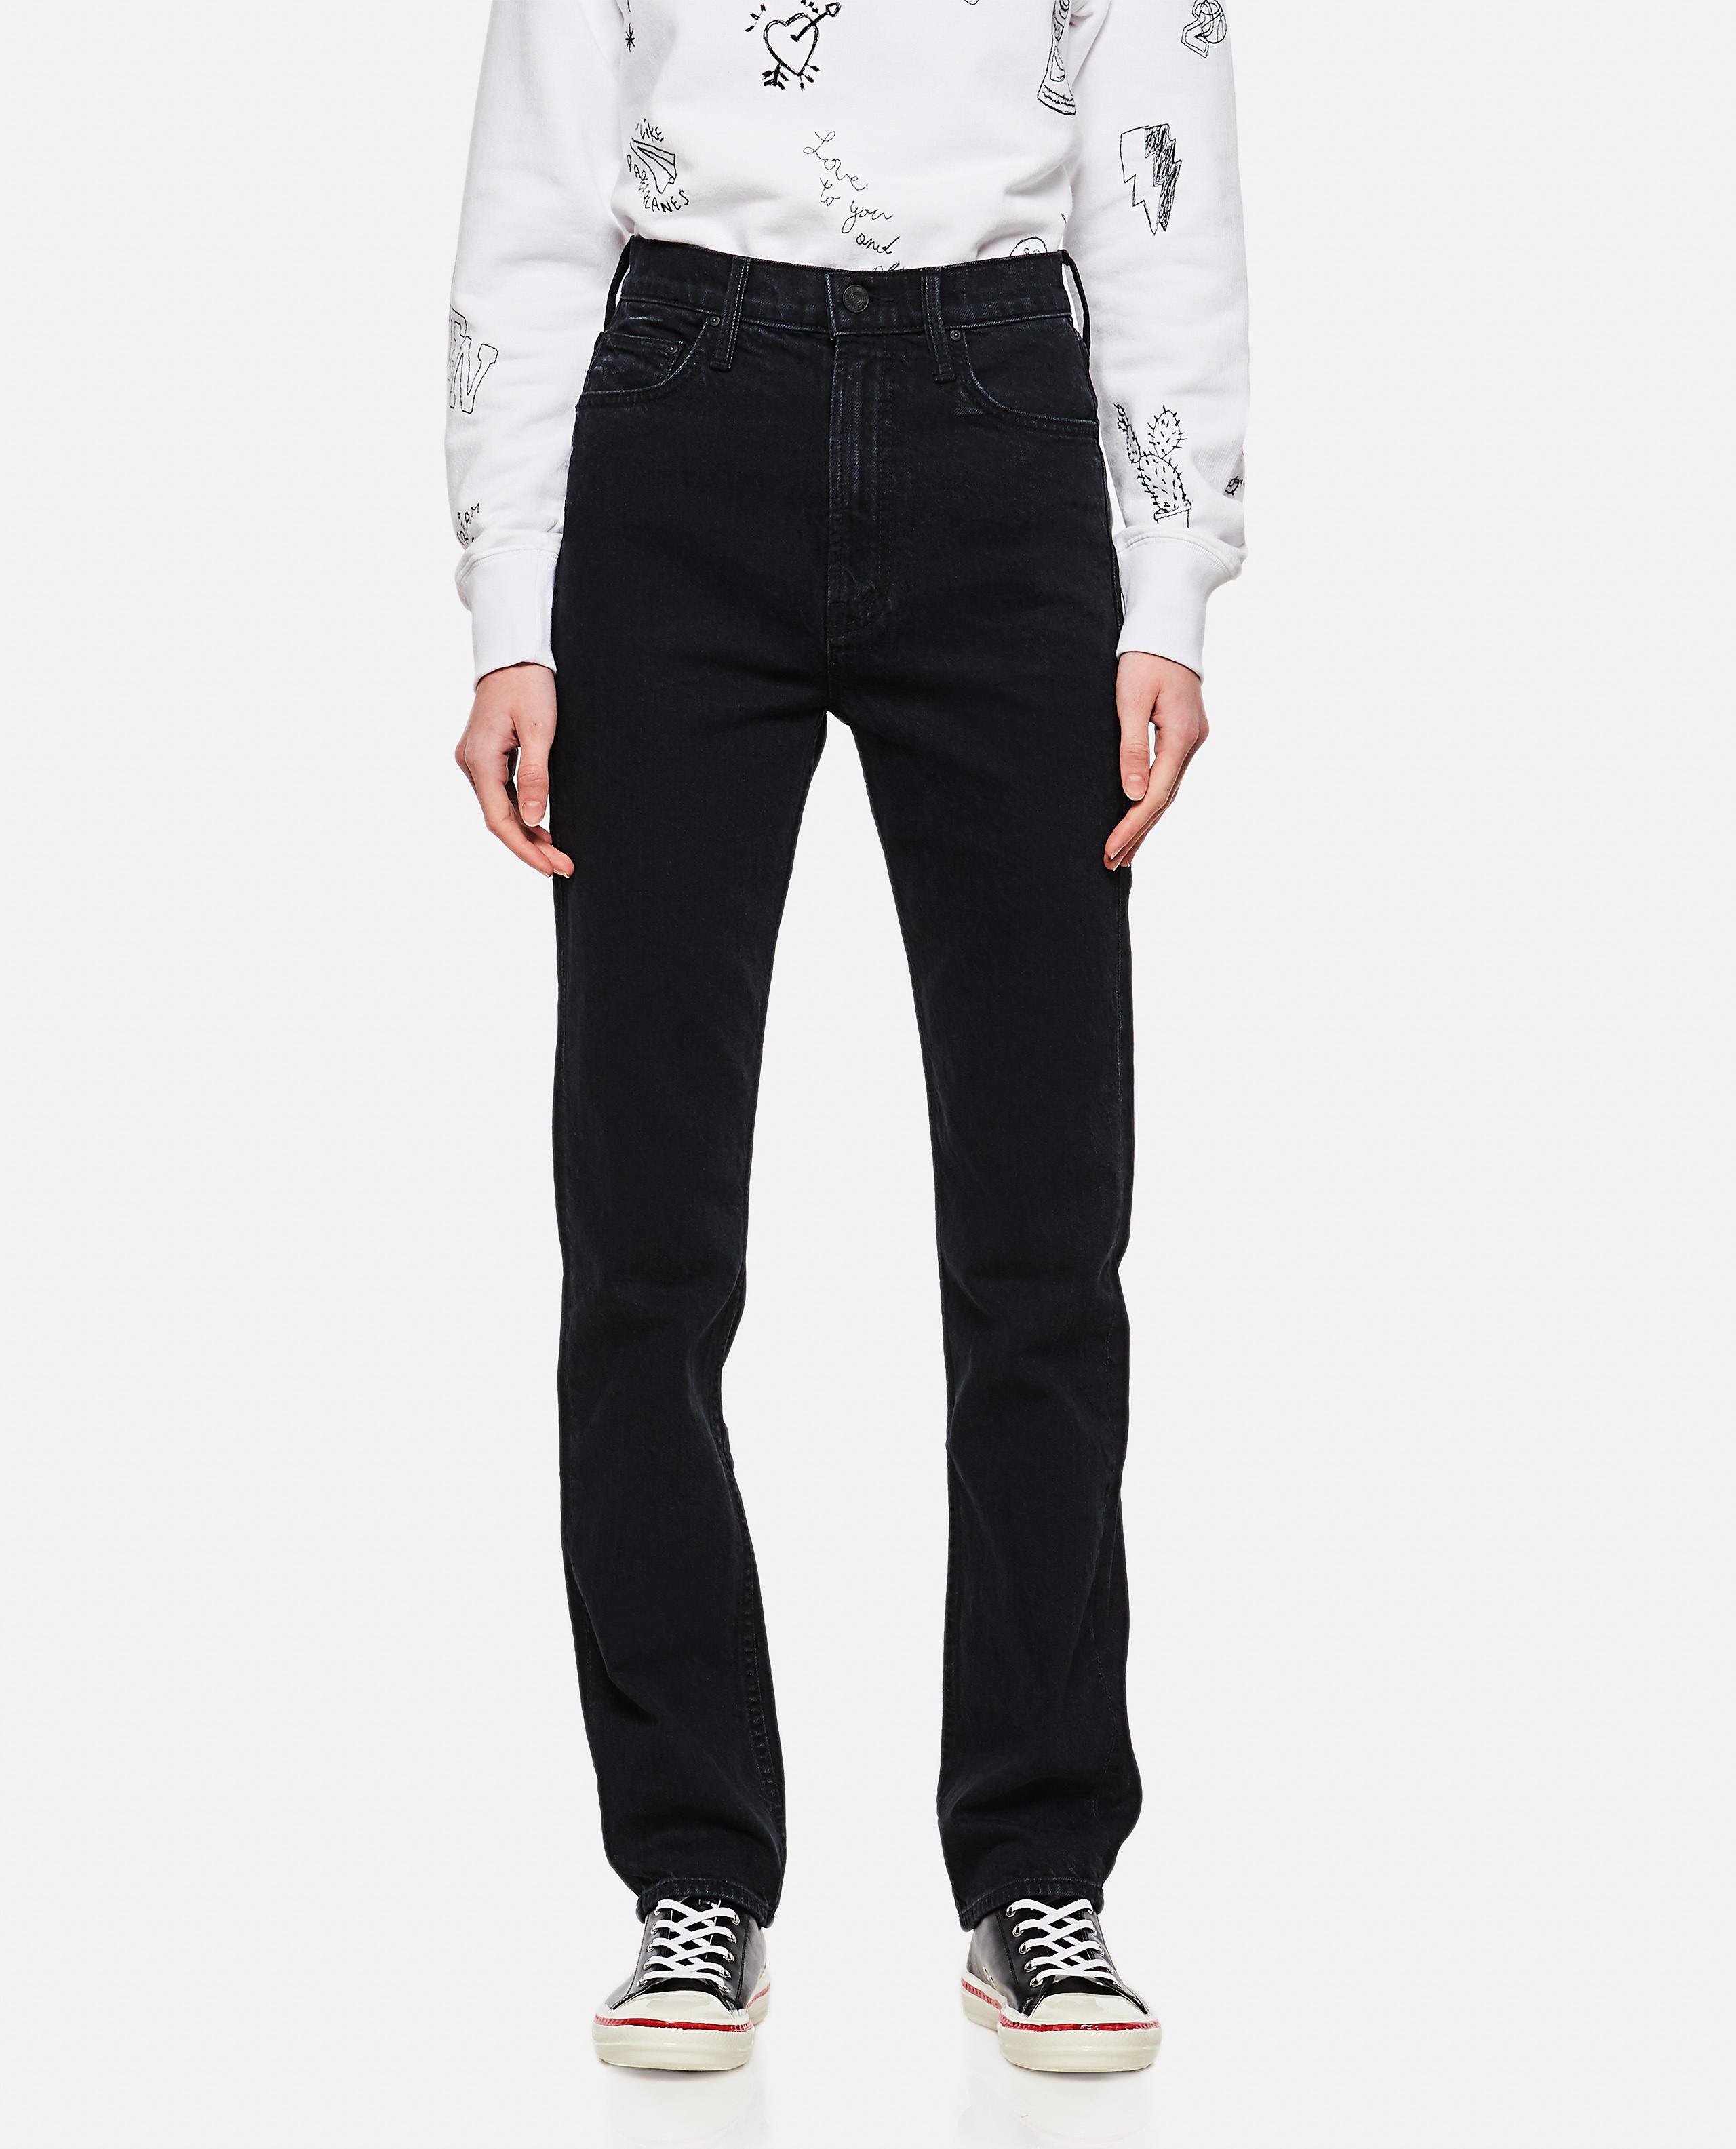 Rider Skimp high-waisted jeans Donna Mother 000289900042704 1